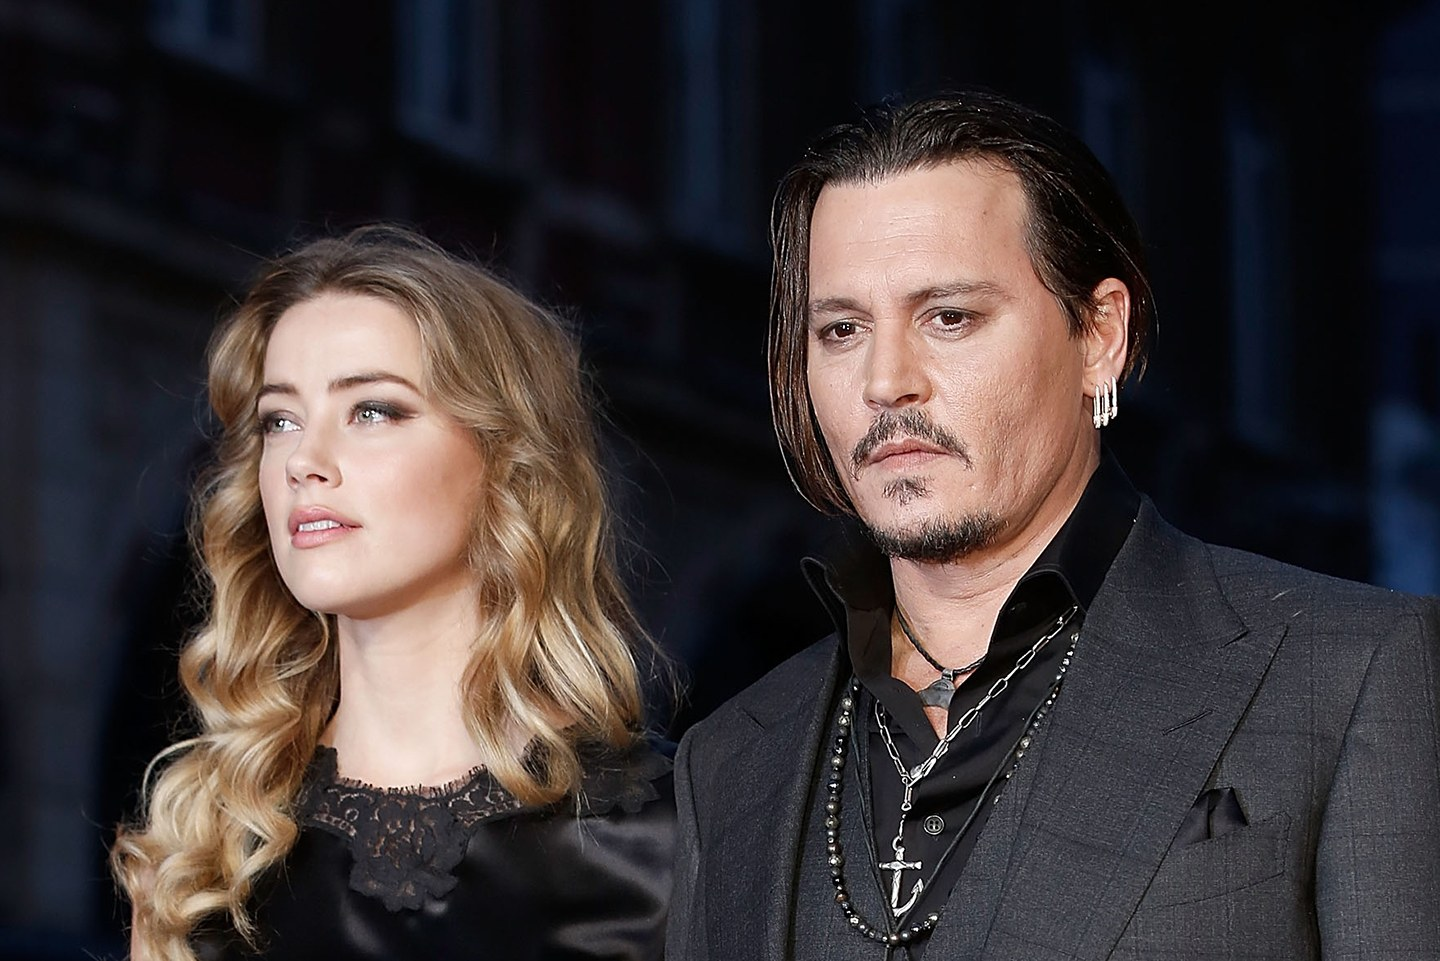 johnny-depp-says-he-feared-for-his-life-when-contracting-dangerous-staph-infection-after-amber-heard-severed-one-of-his-fingers